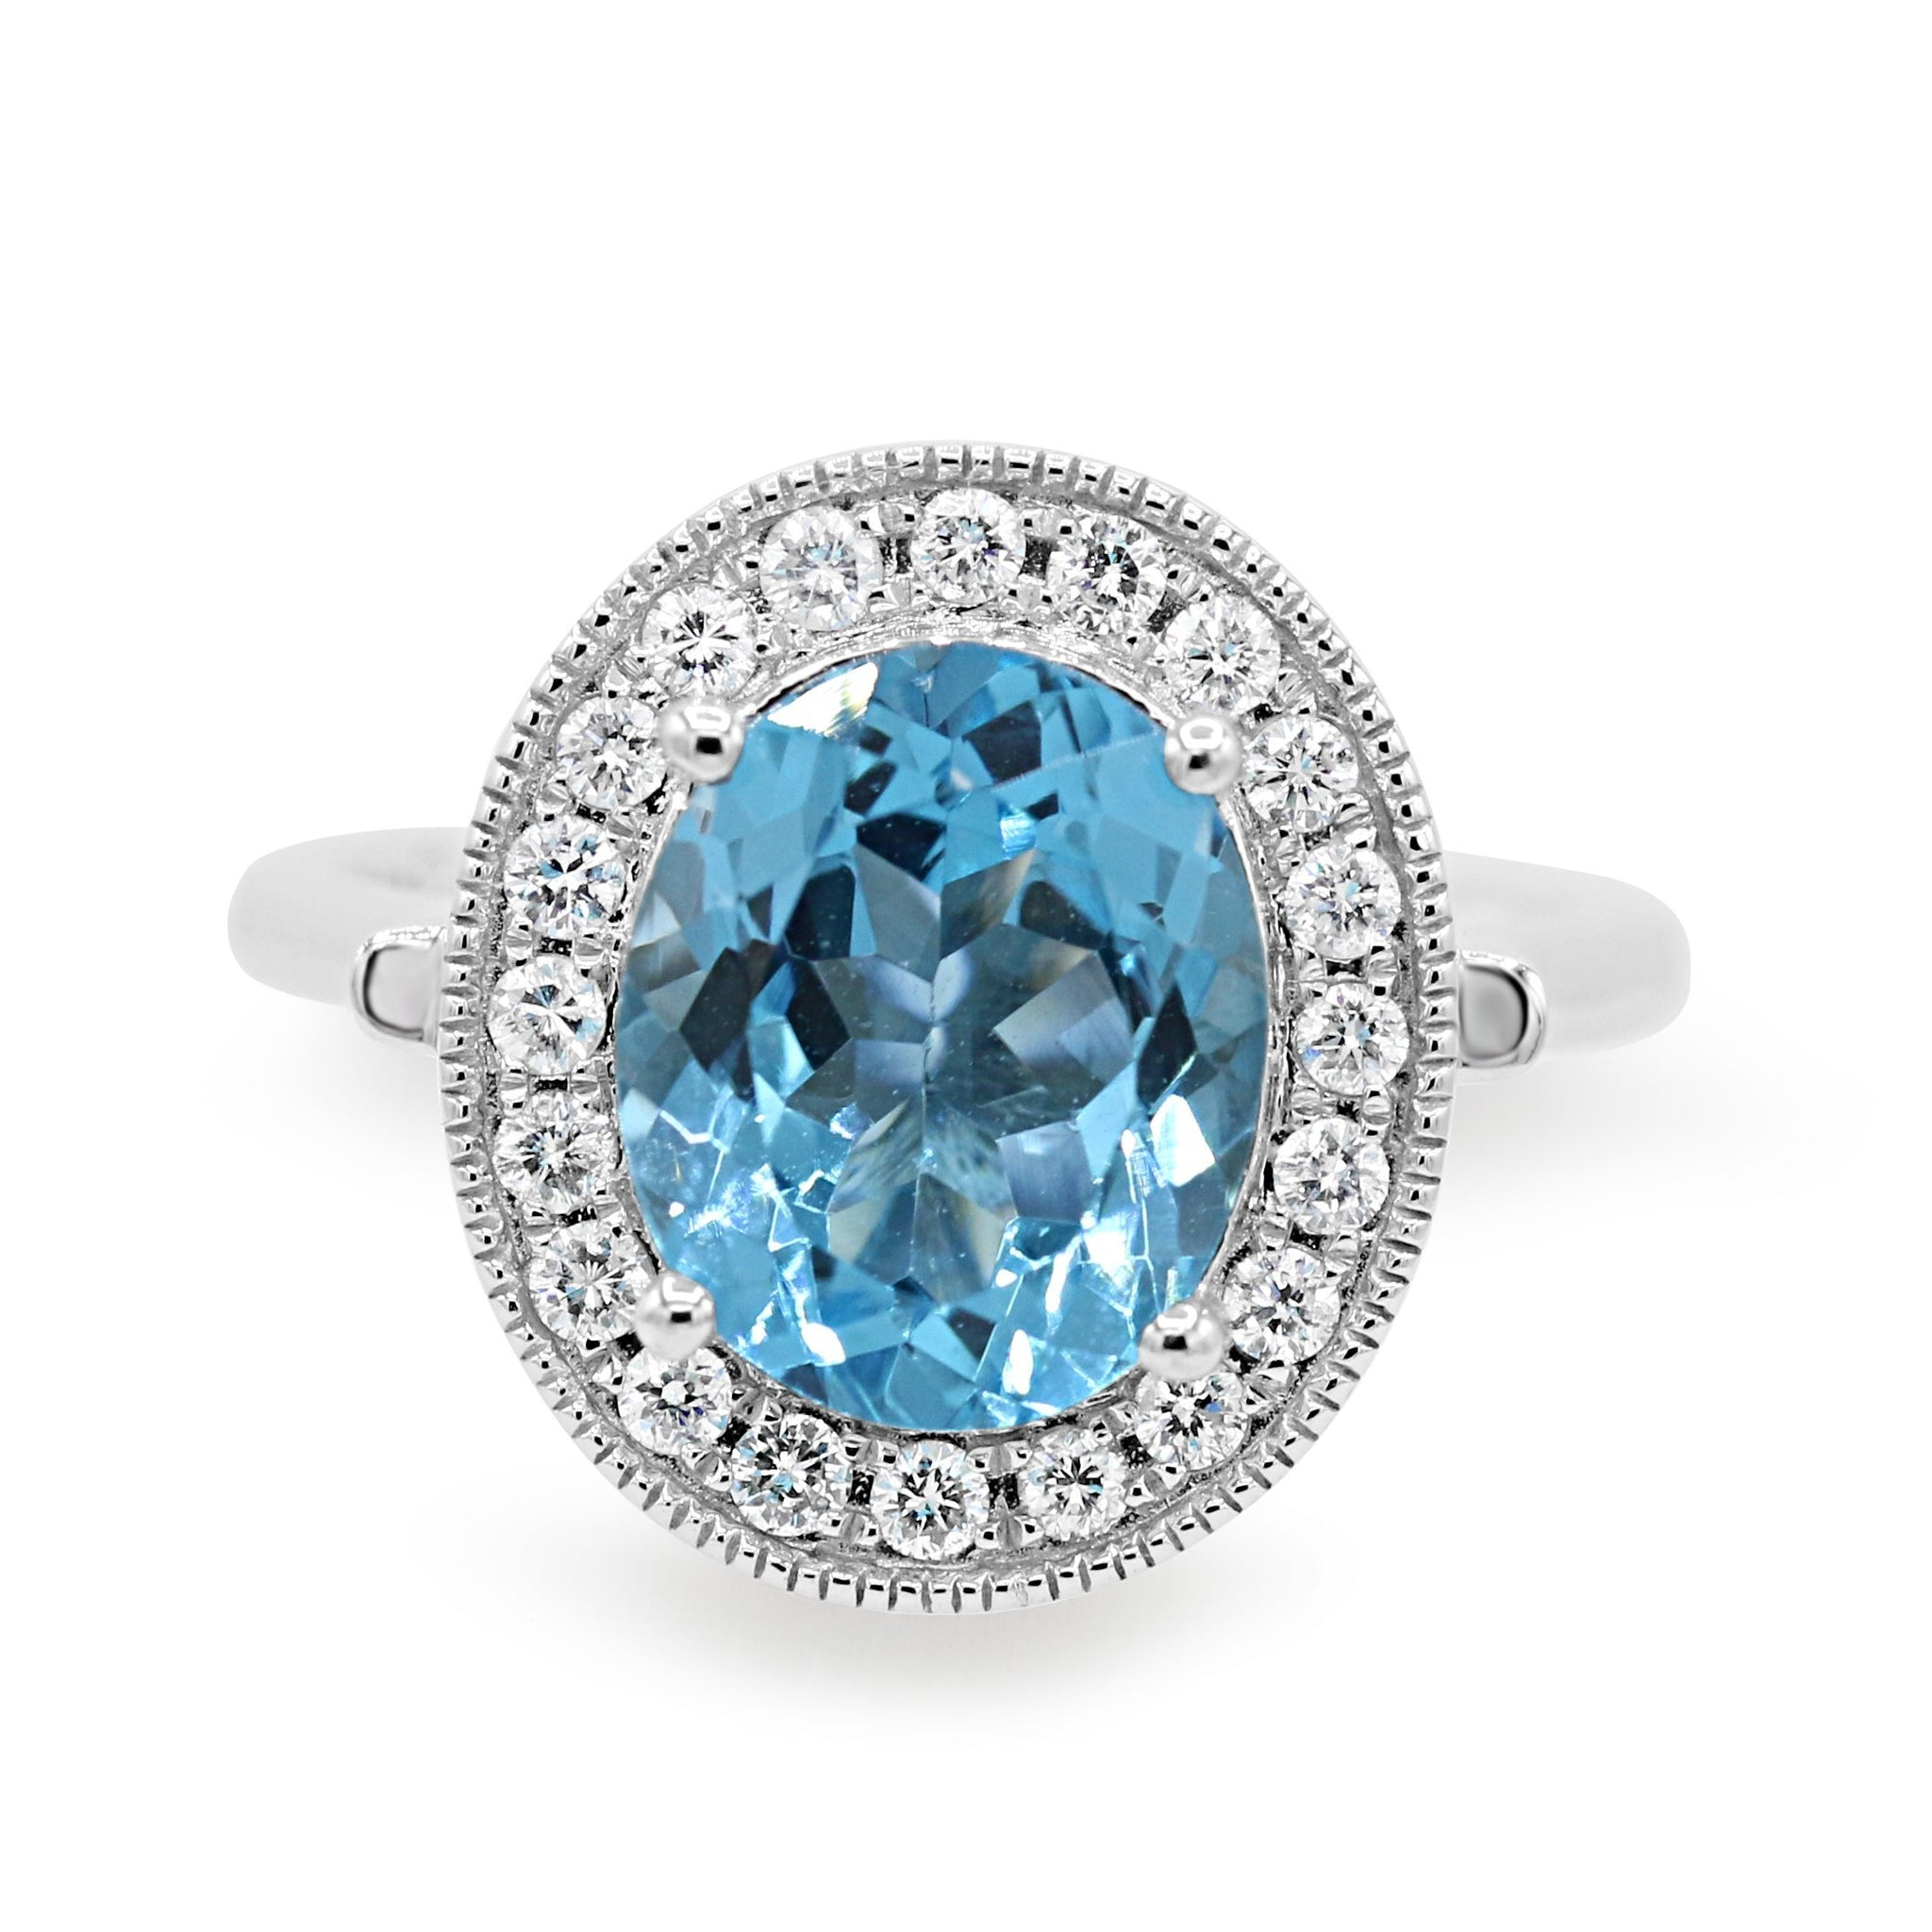 Stunning 14K White Gold Blue Topaz Diamond Ring (4.35ct Carat Diamond Weight)